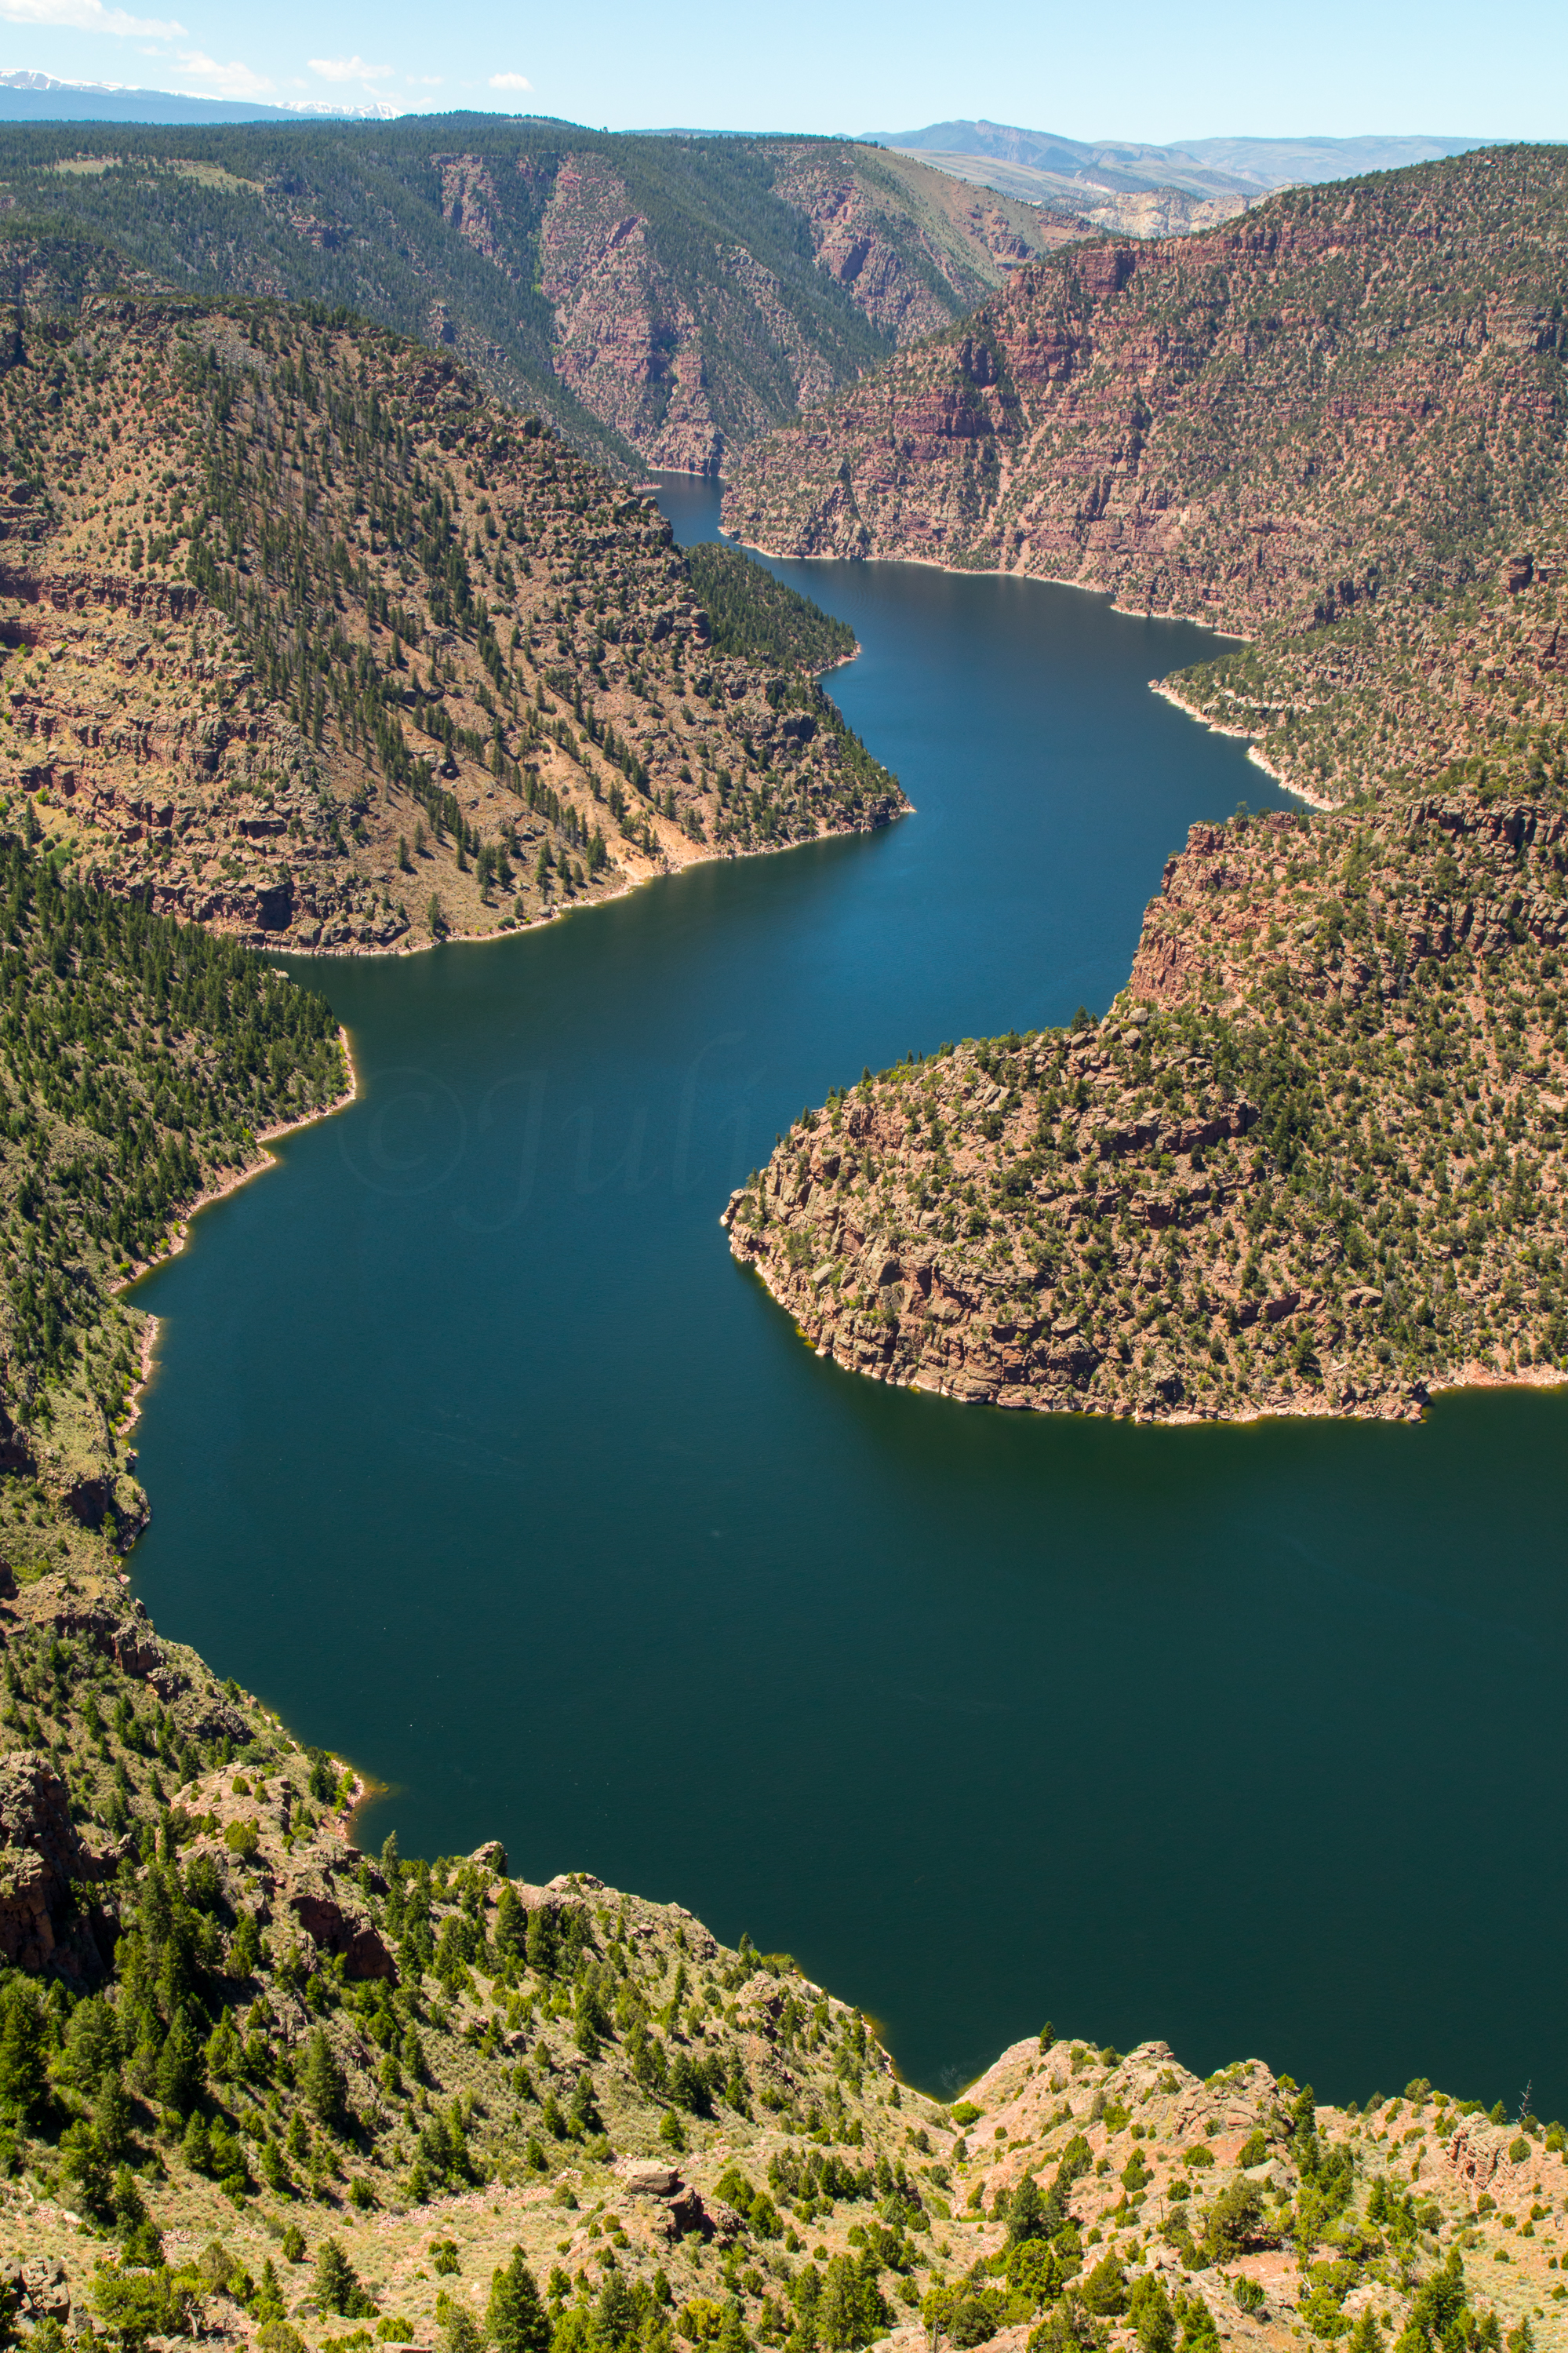 Flaming Gorge National Recreational Area, Image # 8965